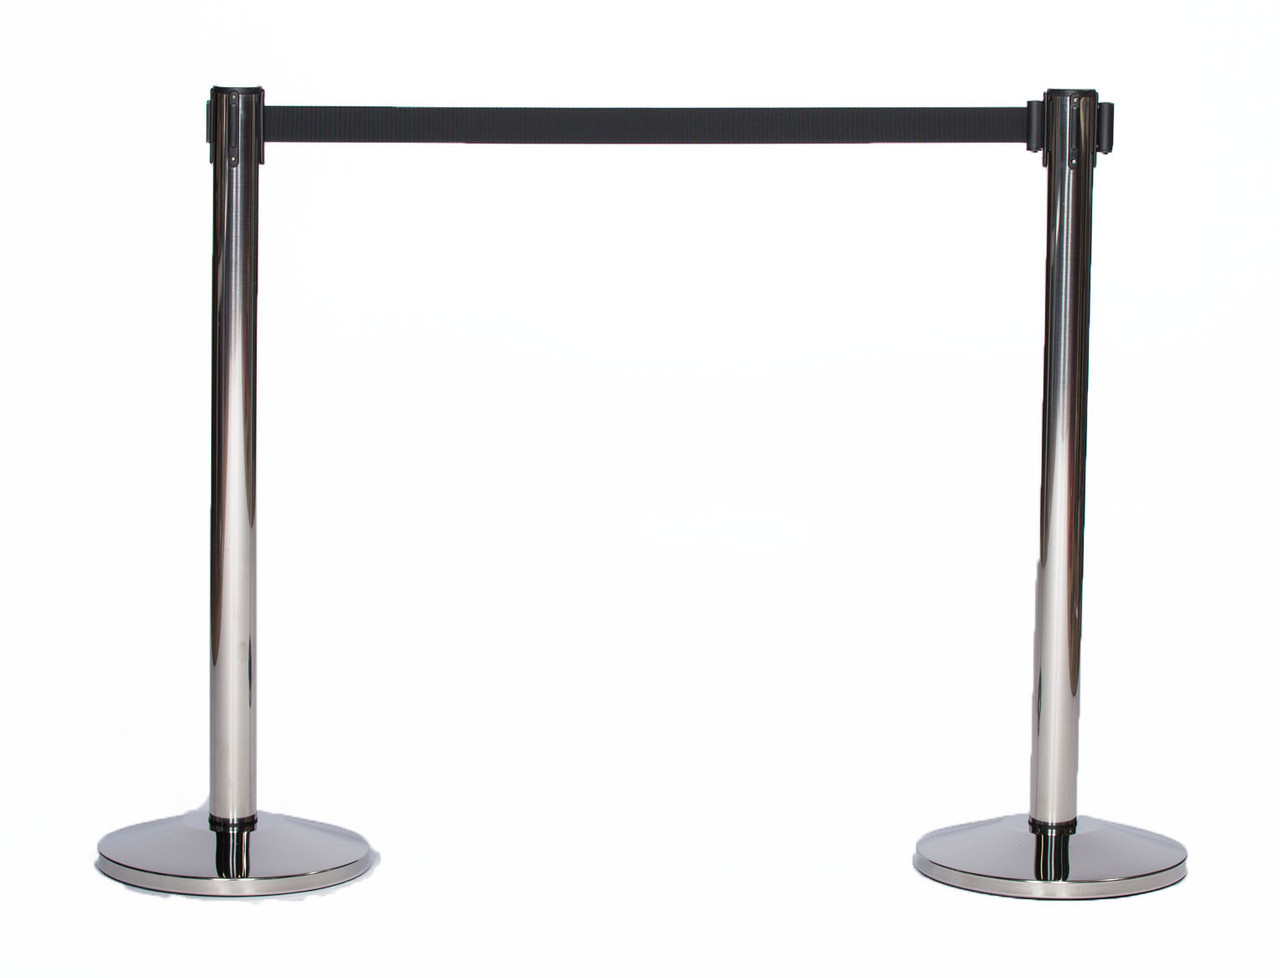 Best Value Pair of Chrome or Stainless Black Retractable Belt Stanchions with a 10' Black Belt